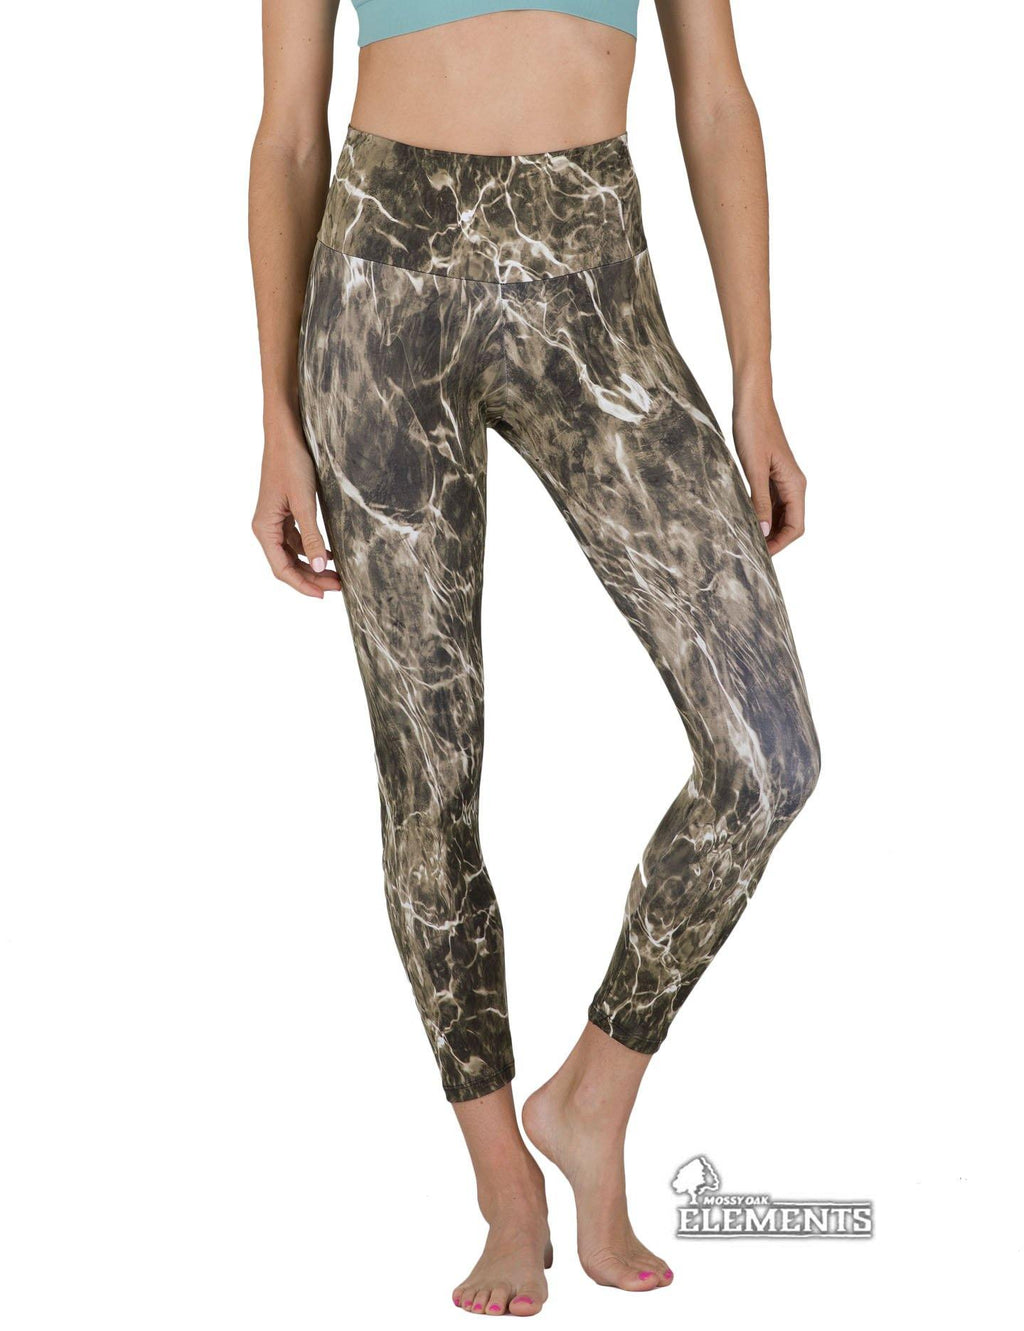 Apsara Leggings High Waist Full Length, Mossy Oak Elements Bronzeback